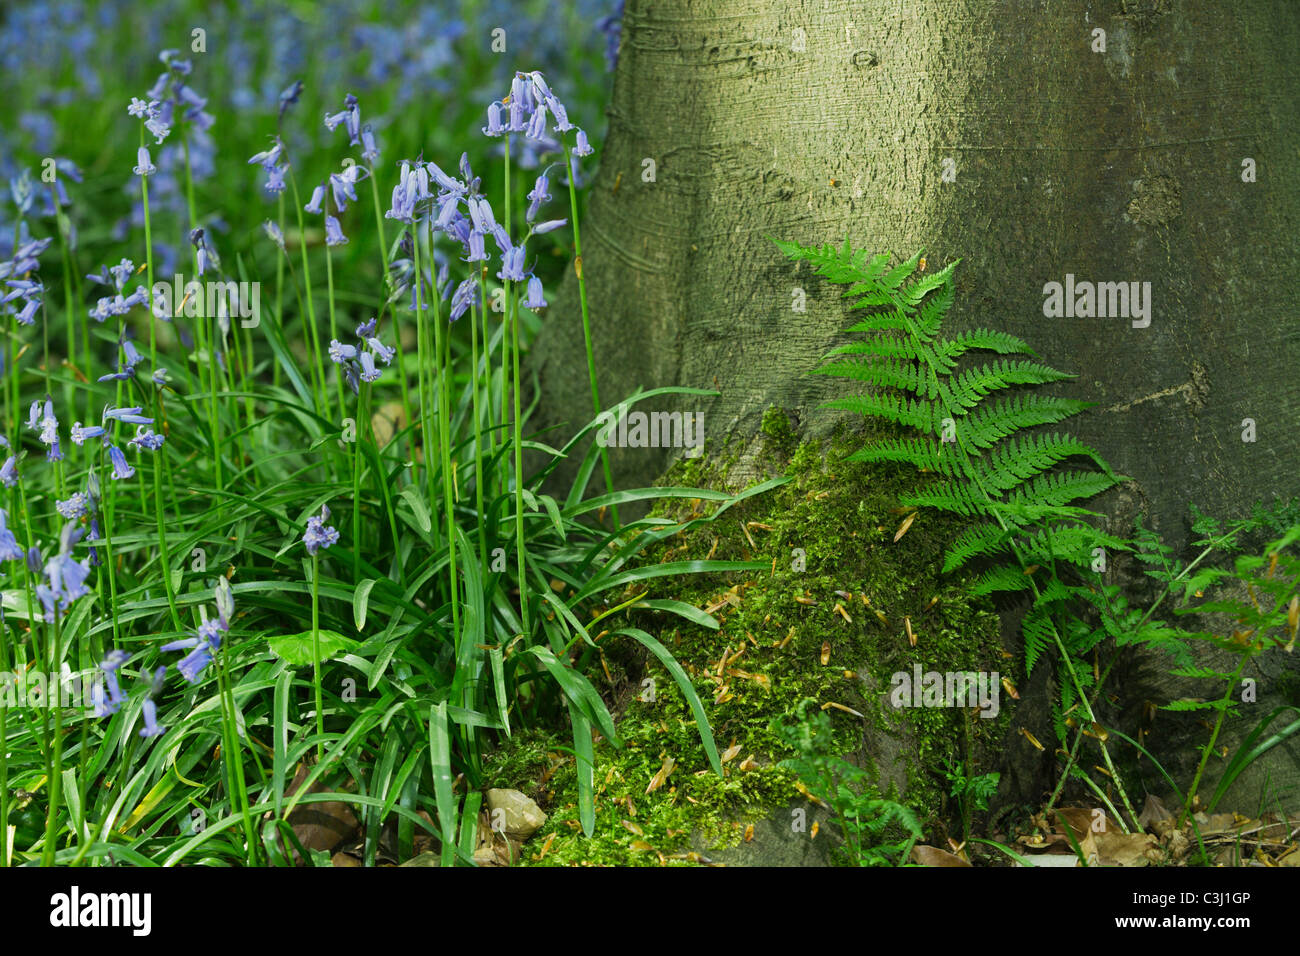 Hasengloeckchen, Scilla non-scripta, Endymion nonscriptus, Common Bluebell Stock Photo